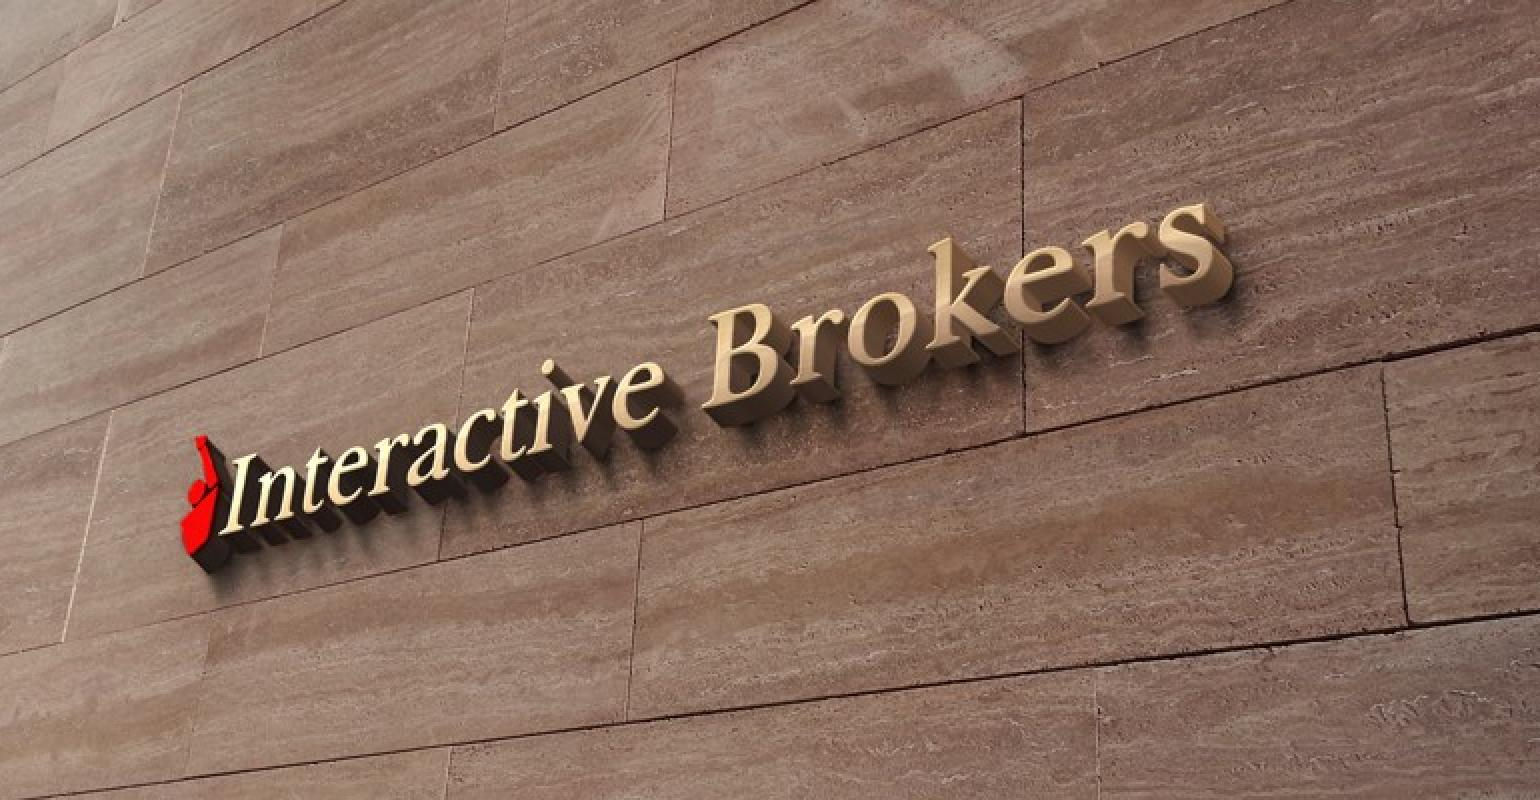 interactive brokers 15